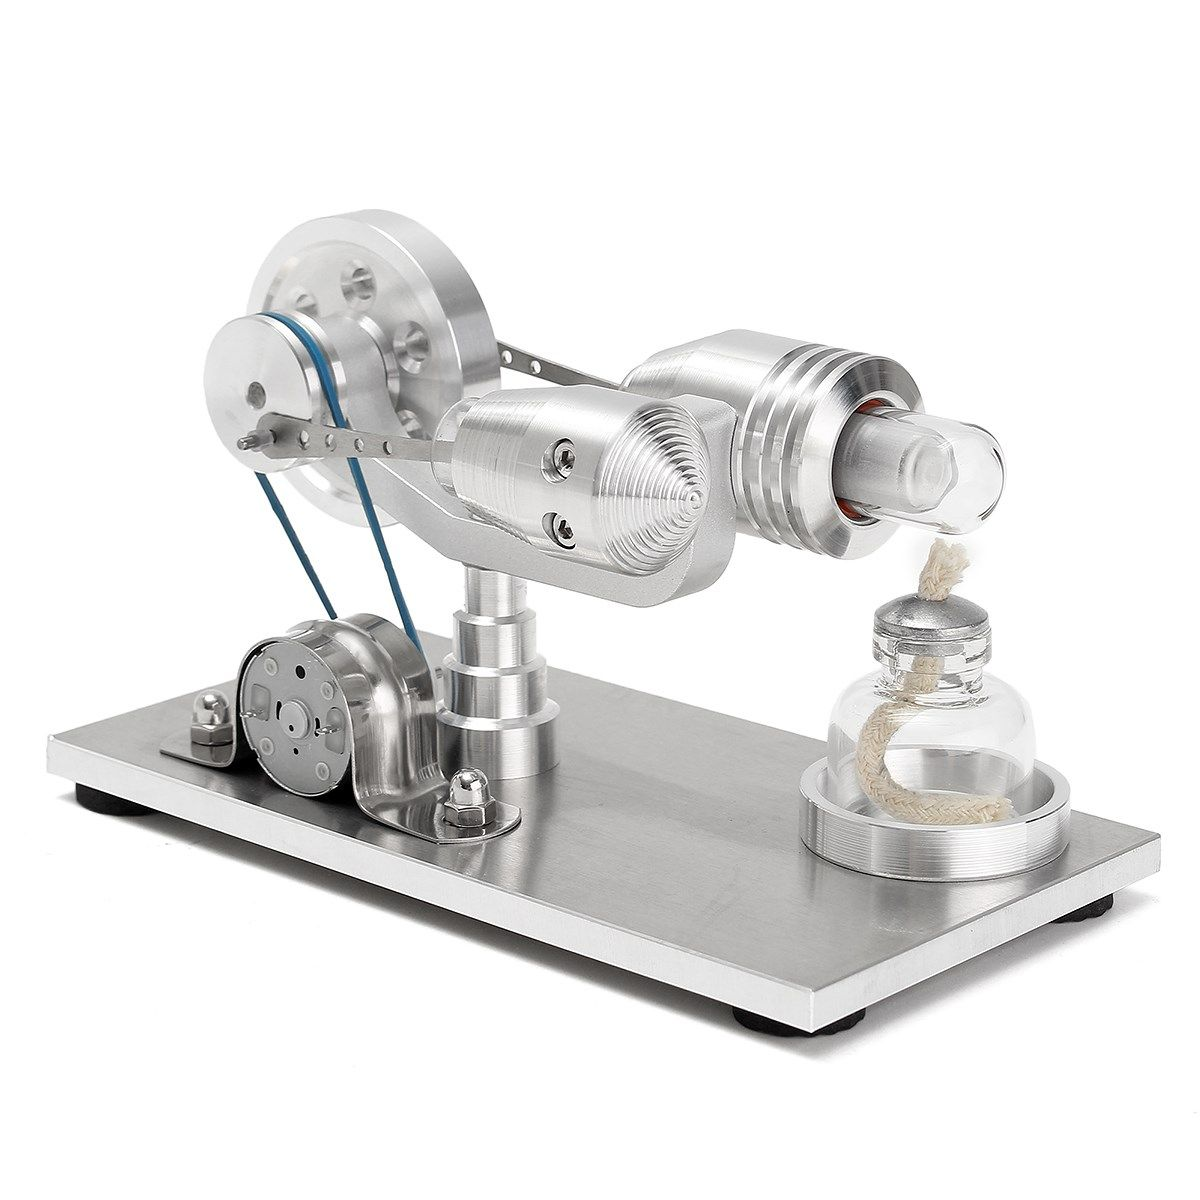 Cheap stirling engine motor, Buy Quality air stirling engine directly from China experiment kit Suppliers: New Arrival Stainless steel Mini Hot Air Stirling Engine Motor Model Educational Toy Science Experiment Kit Set For Chuldren